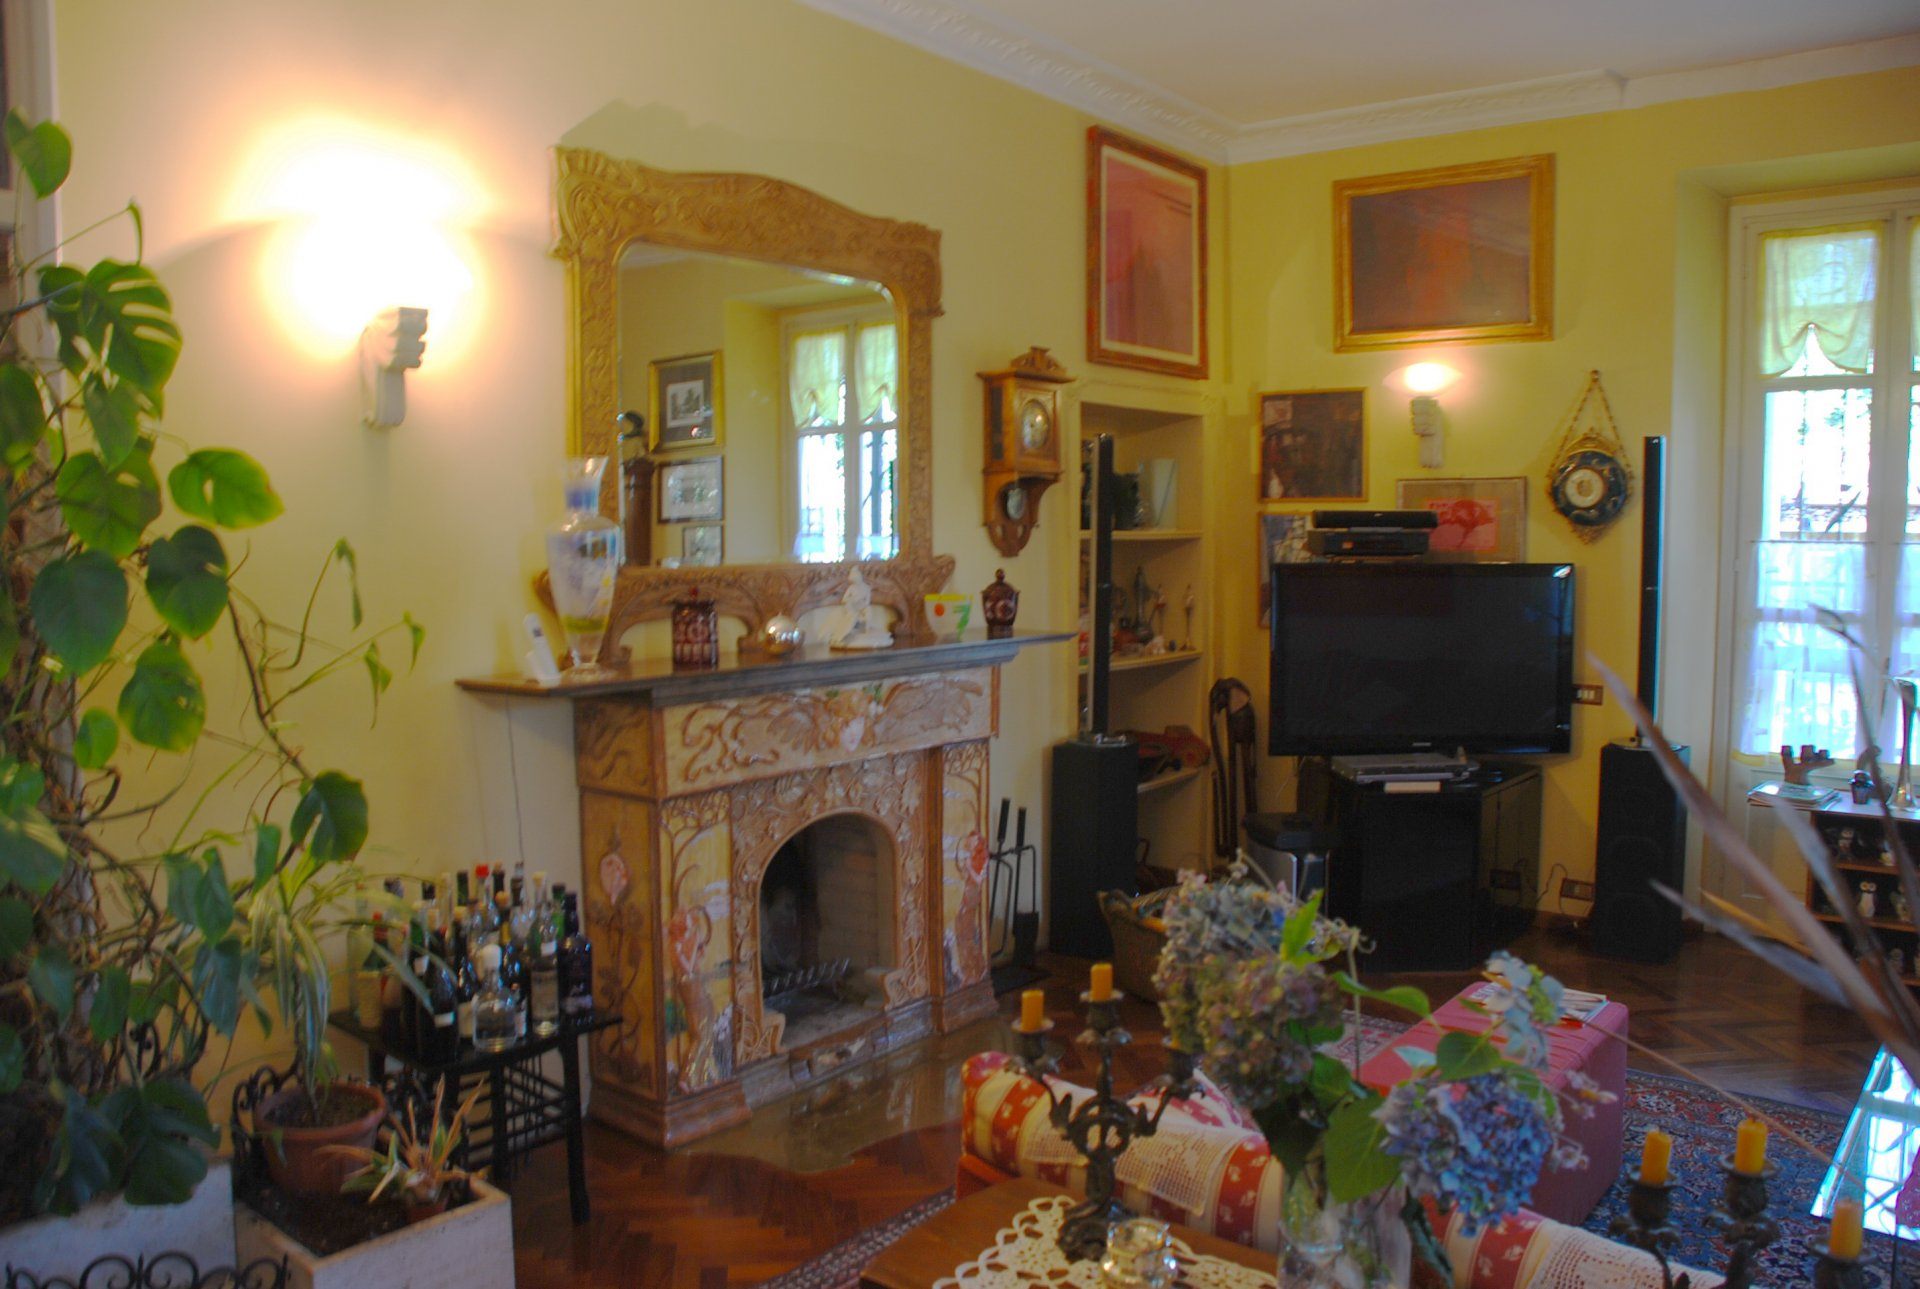 Villa Liberty for sale in Mornago- living room with fireplace